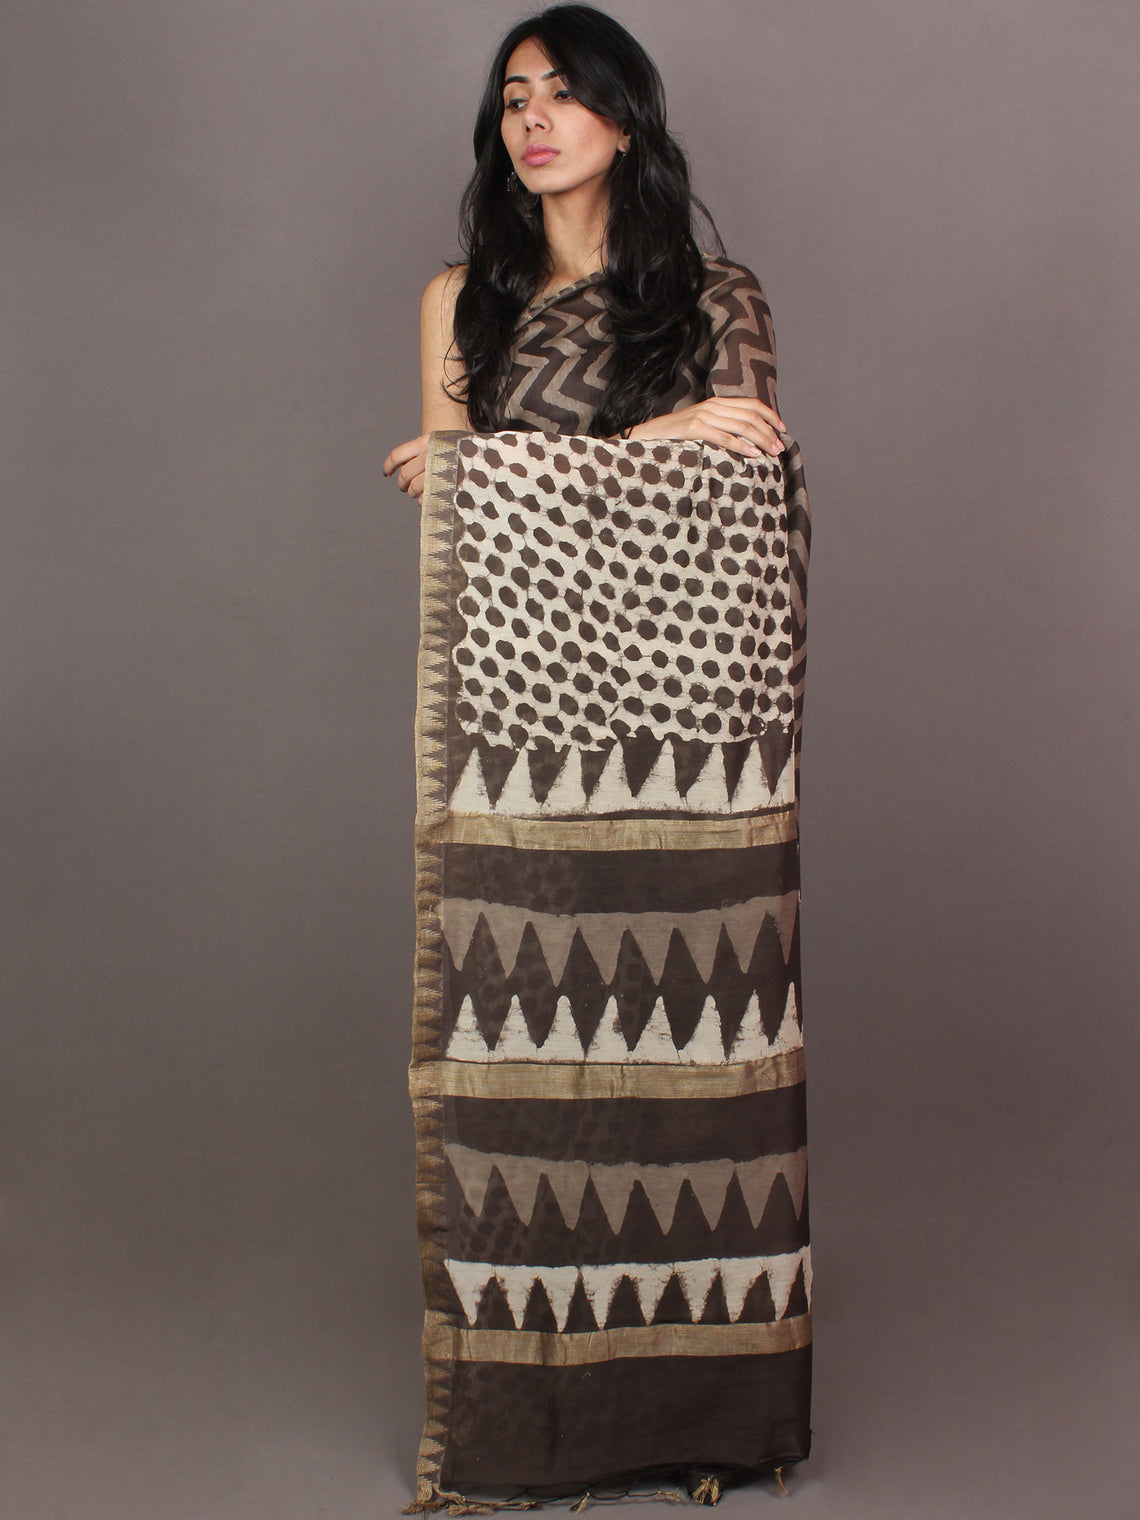 Ivory Brown White Hand Block Printed in Natural Vegetable Colors Chanderi Saree With Geecha Border - S03170864